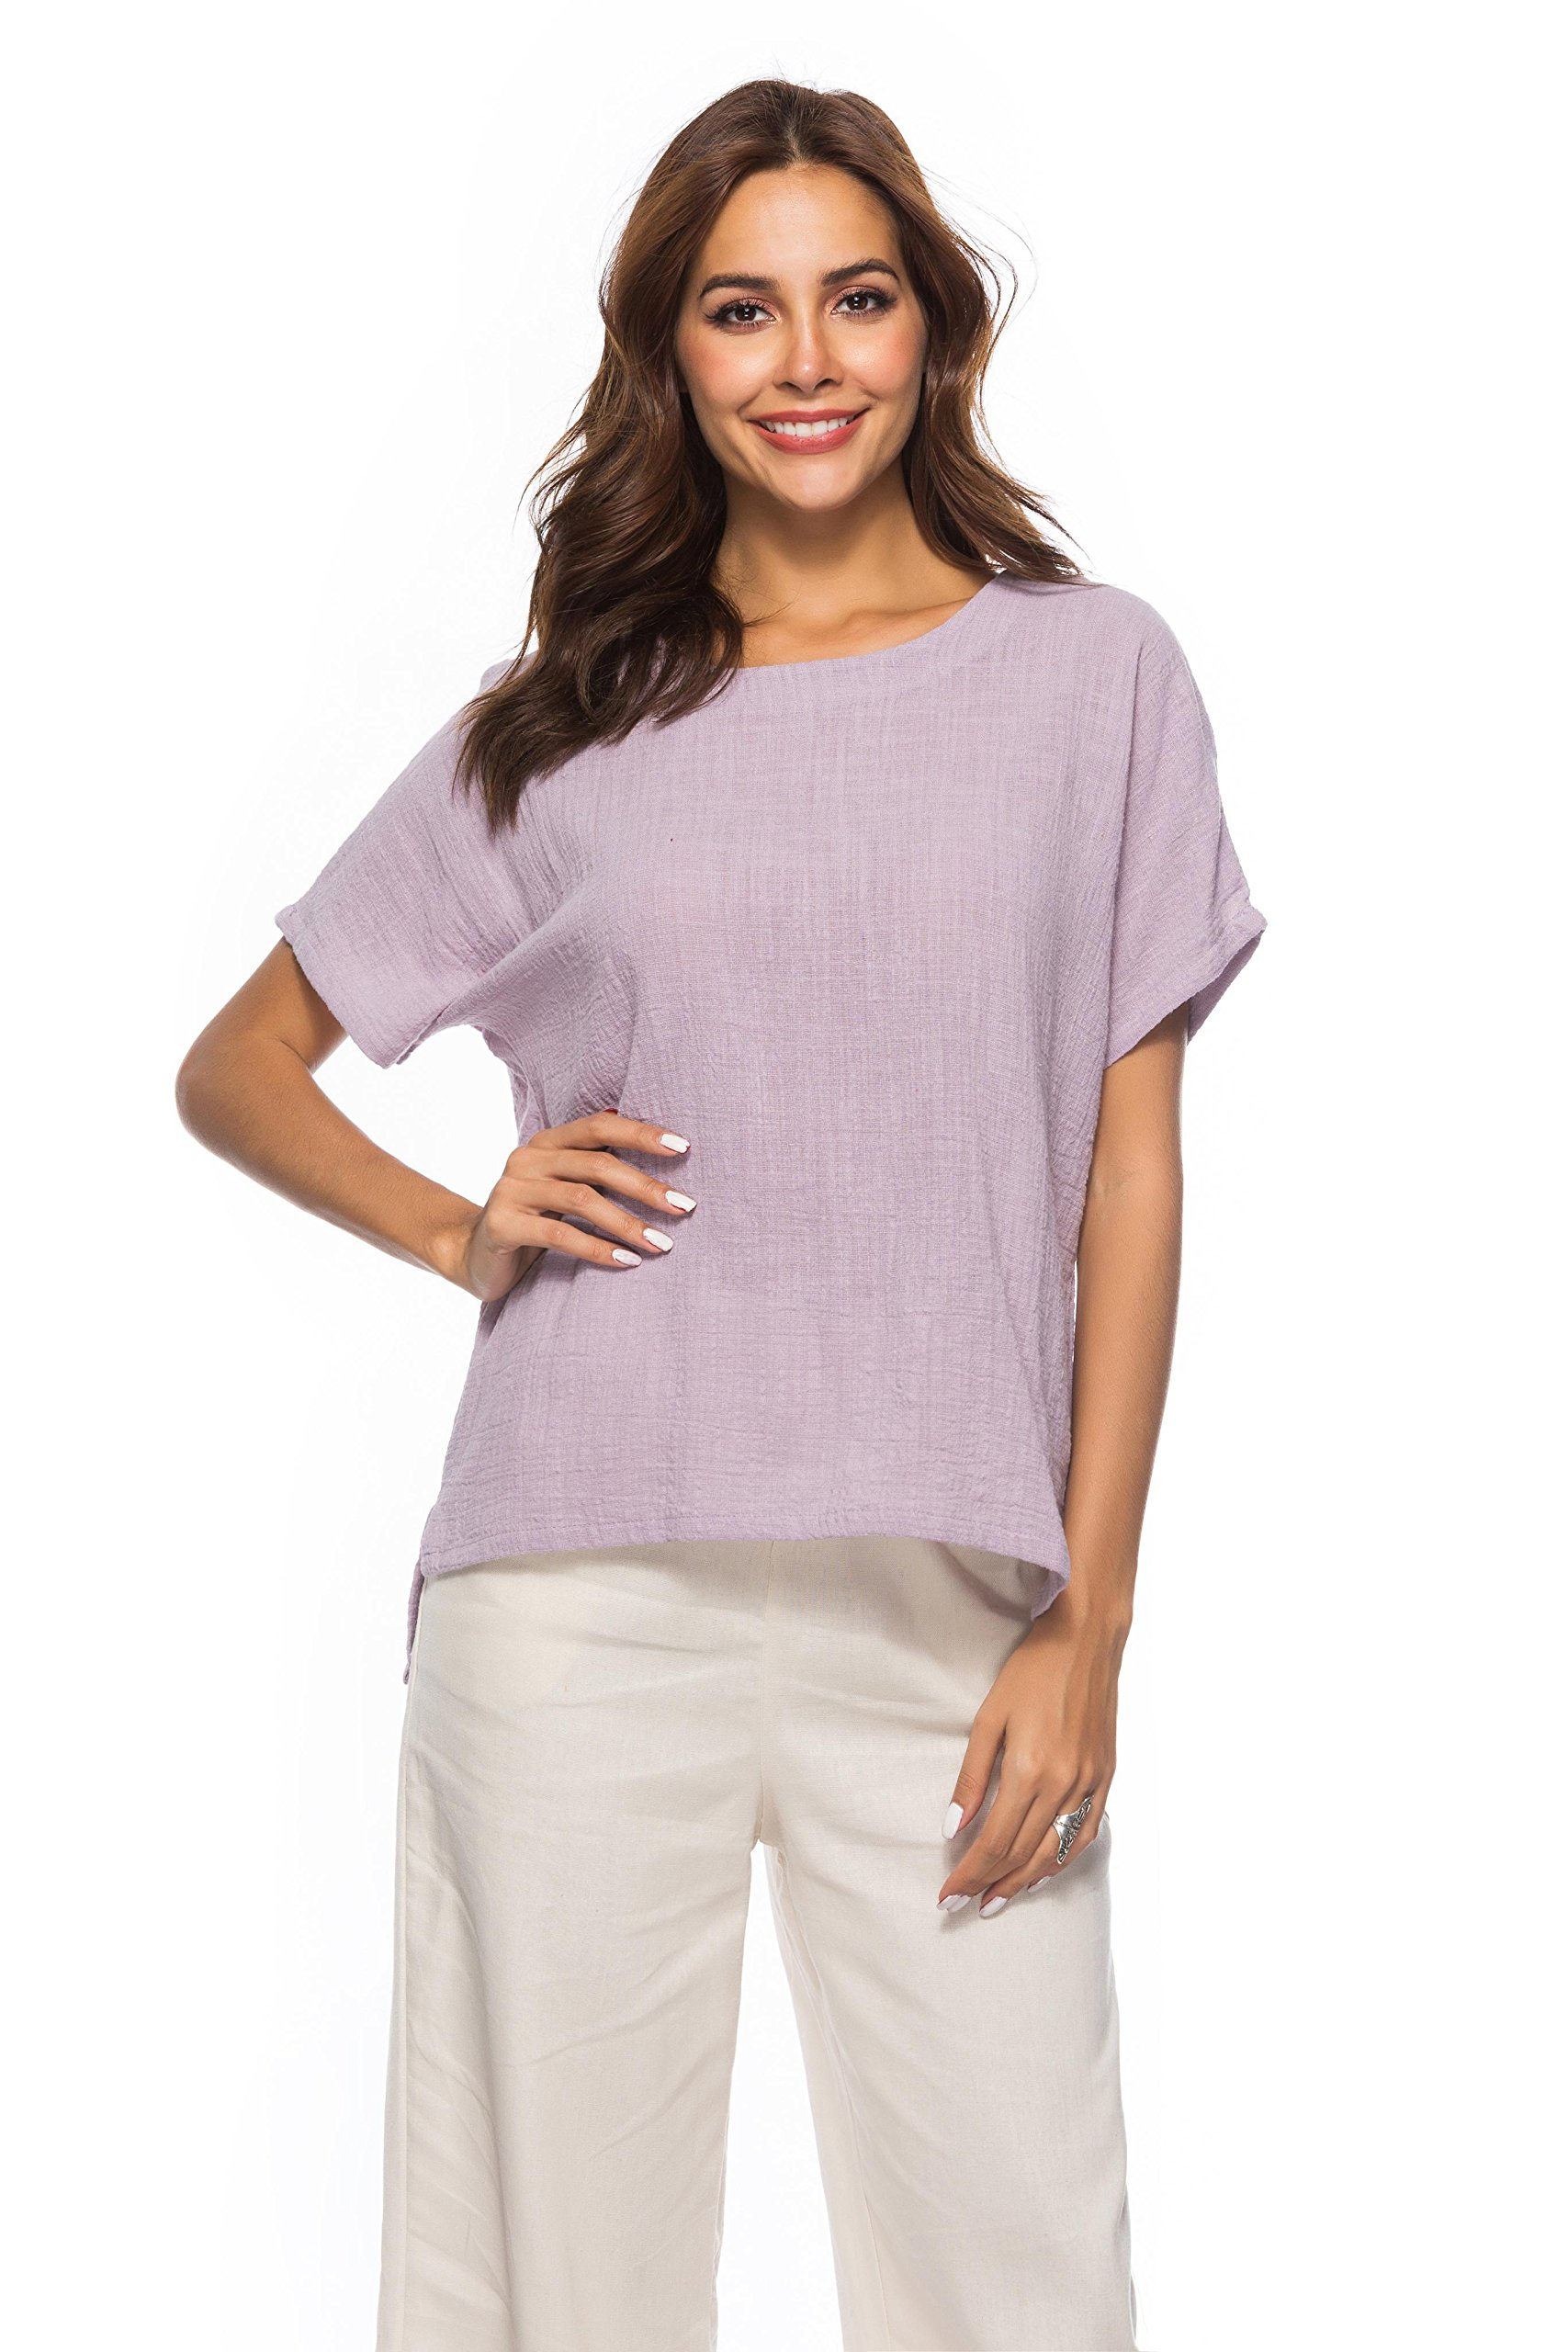 Prior Jms Women's Linen T-Shirt Blouse Casual Loose Short Sleeve Tops Cotton Linen Round Collar Shirs Tunic